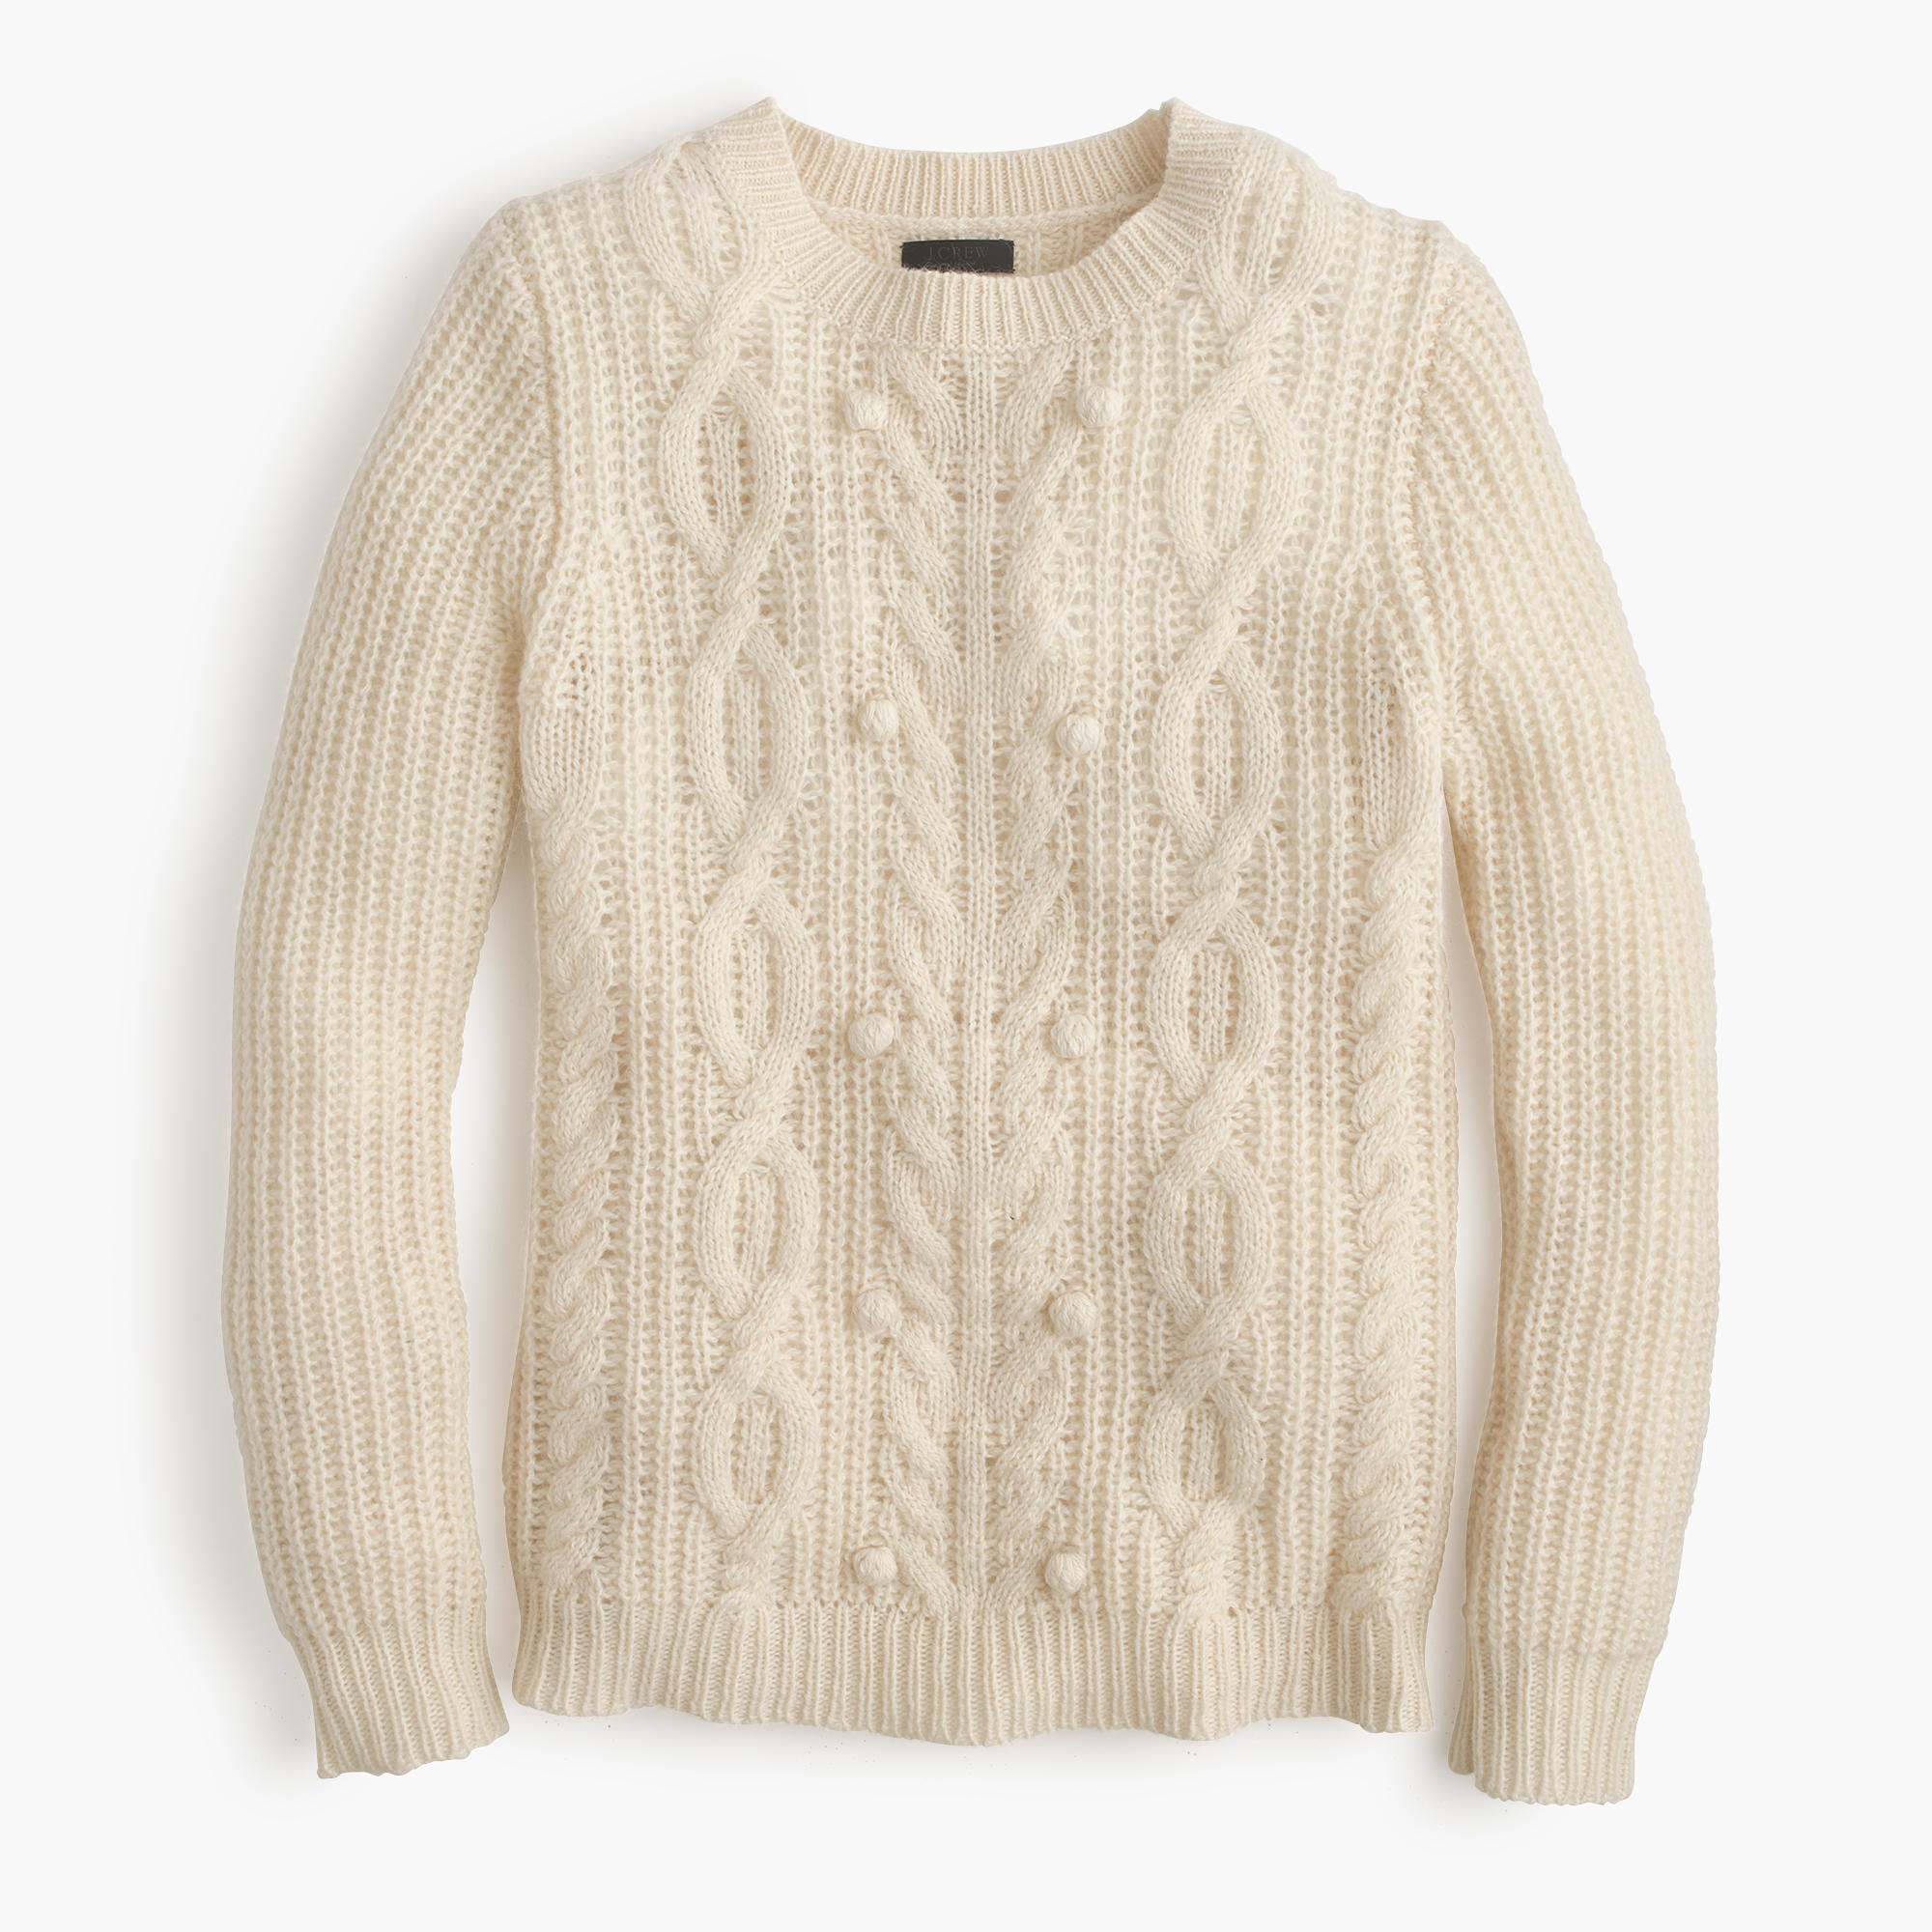 68d72a0550f64b J.Crew Italian Cashmere Cable Sweater With Pom-poms in Natural - Lyst